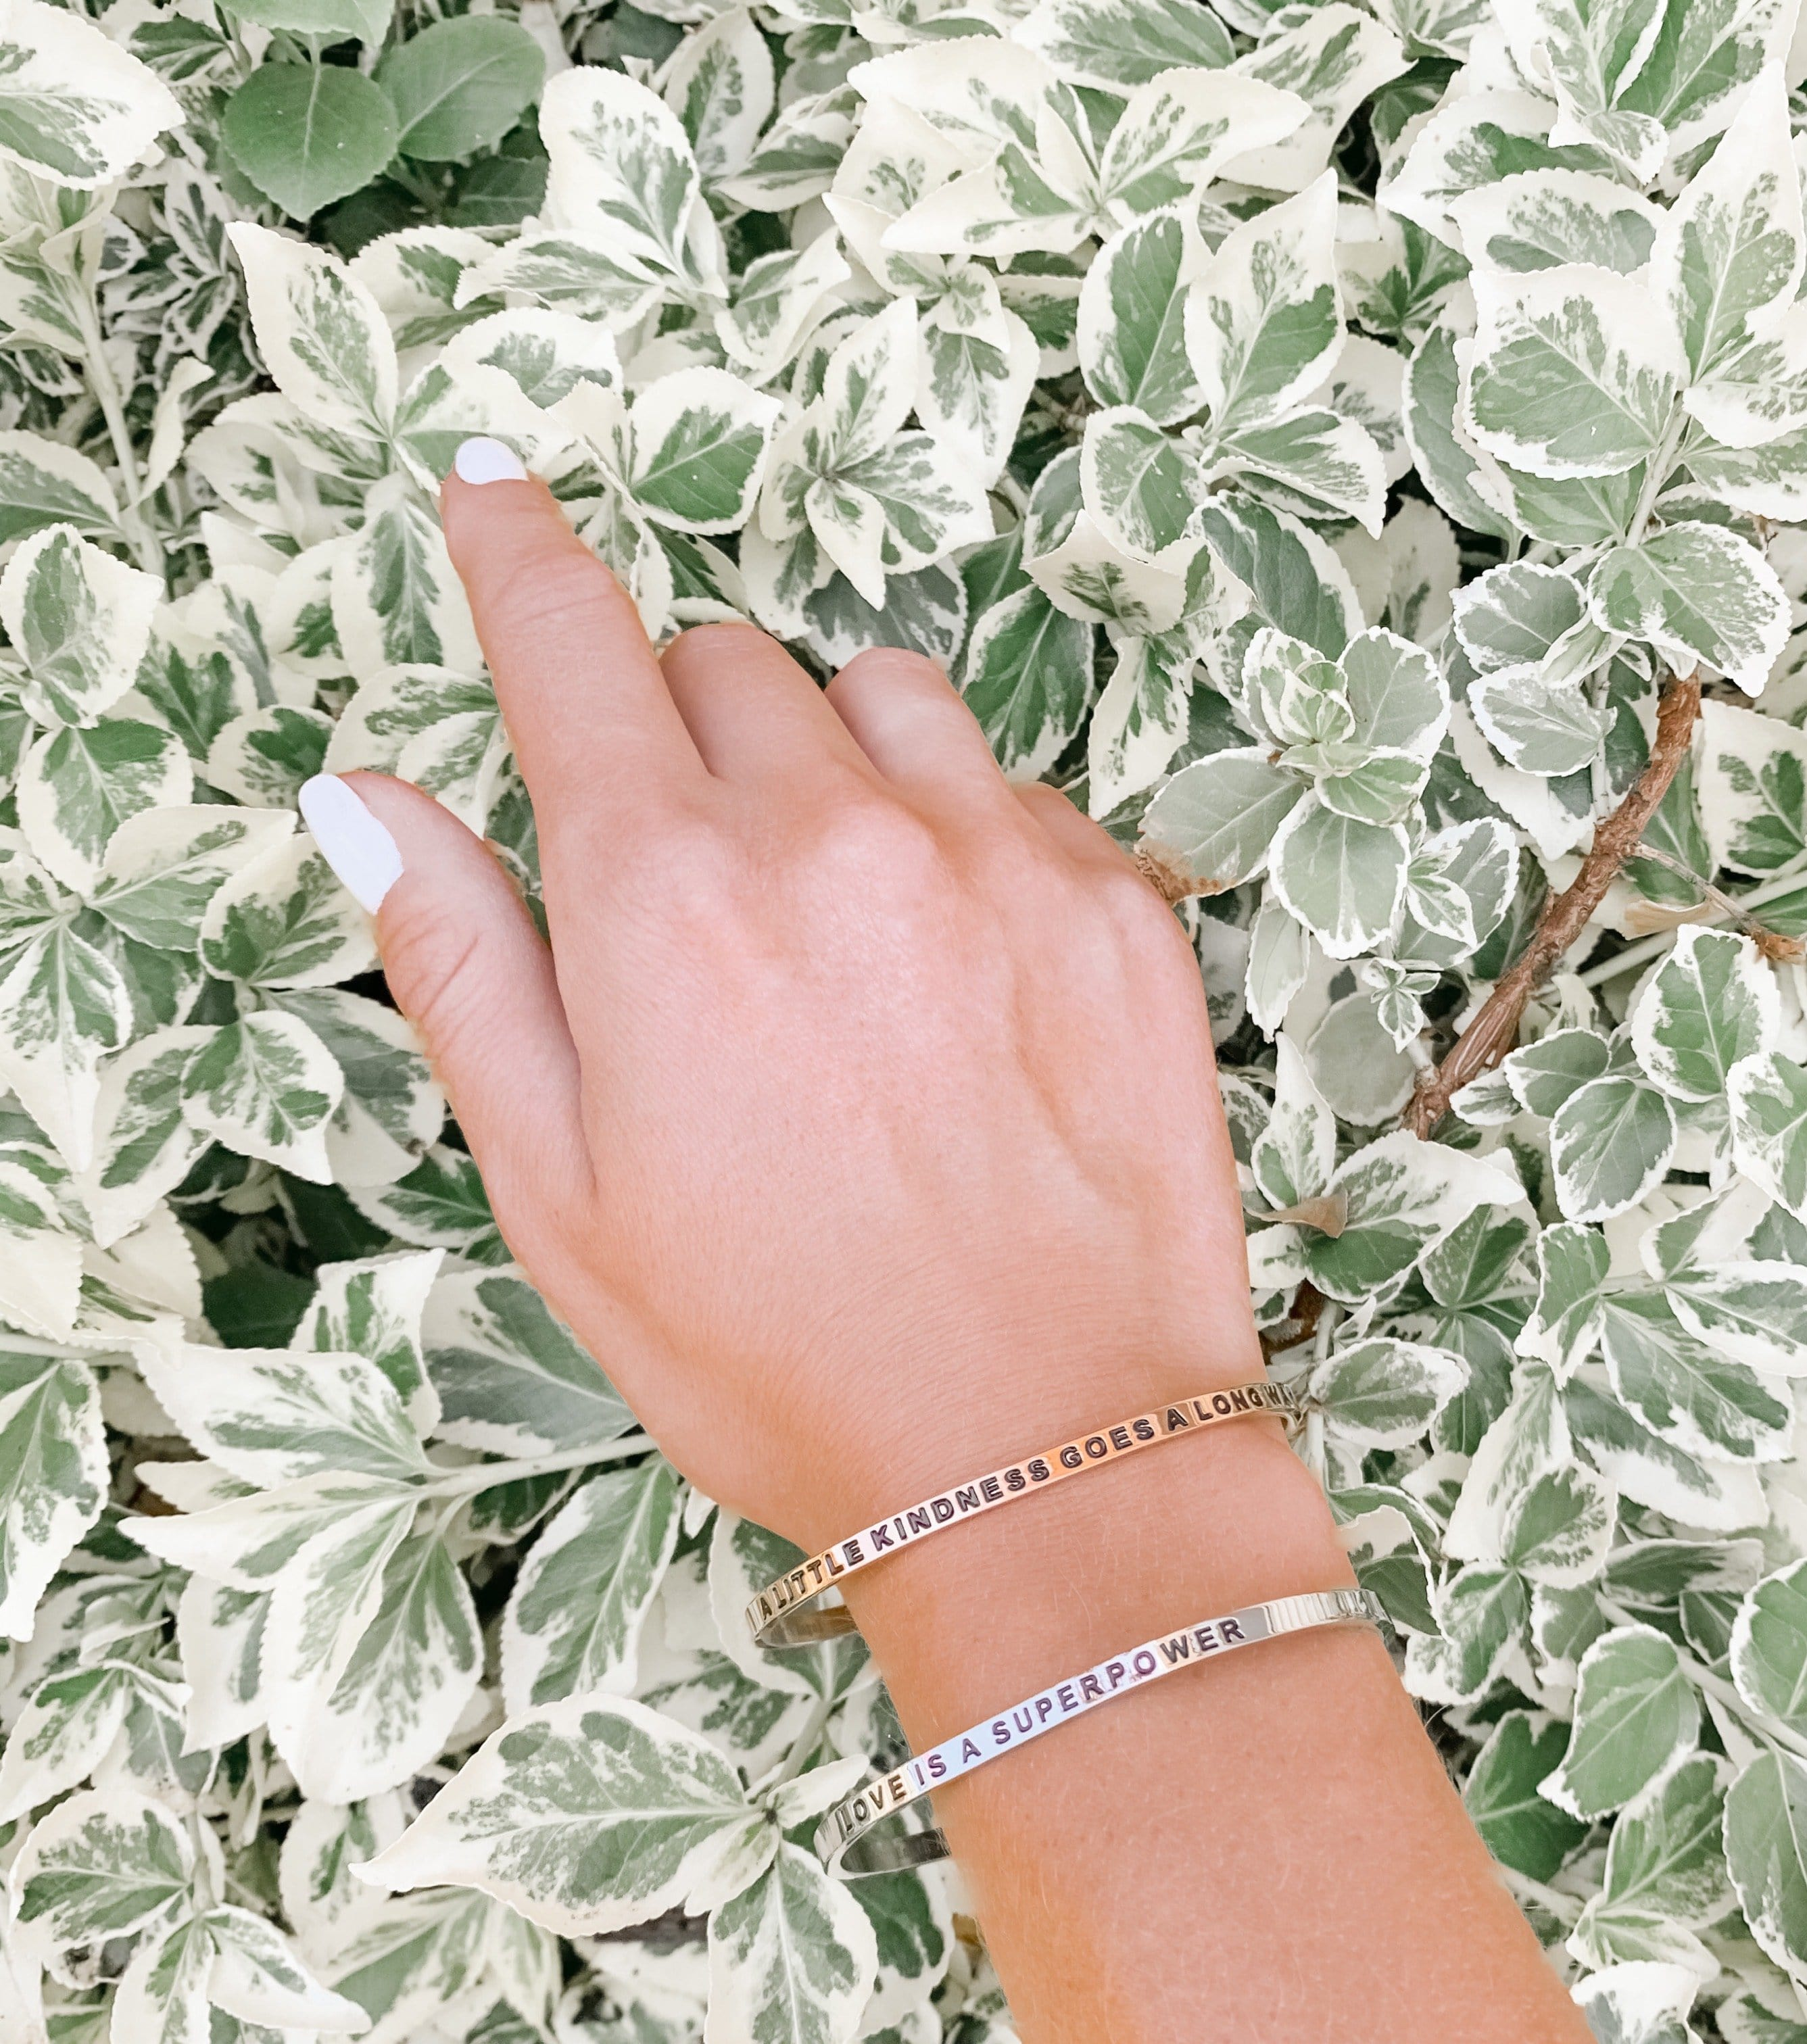 Confidence Breeds Beauty: Bracelet